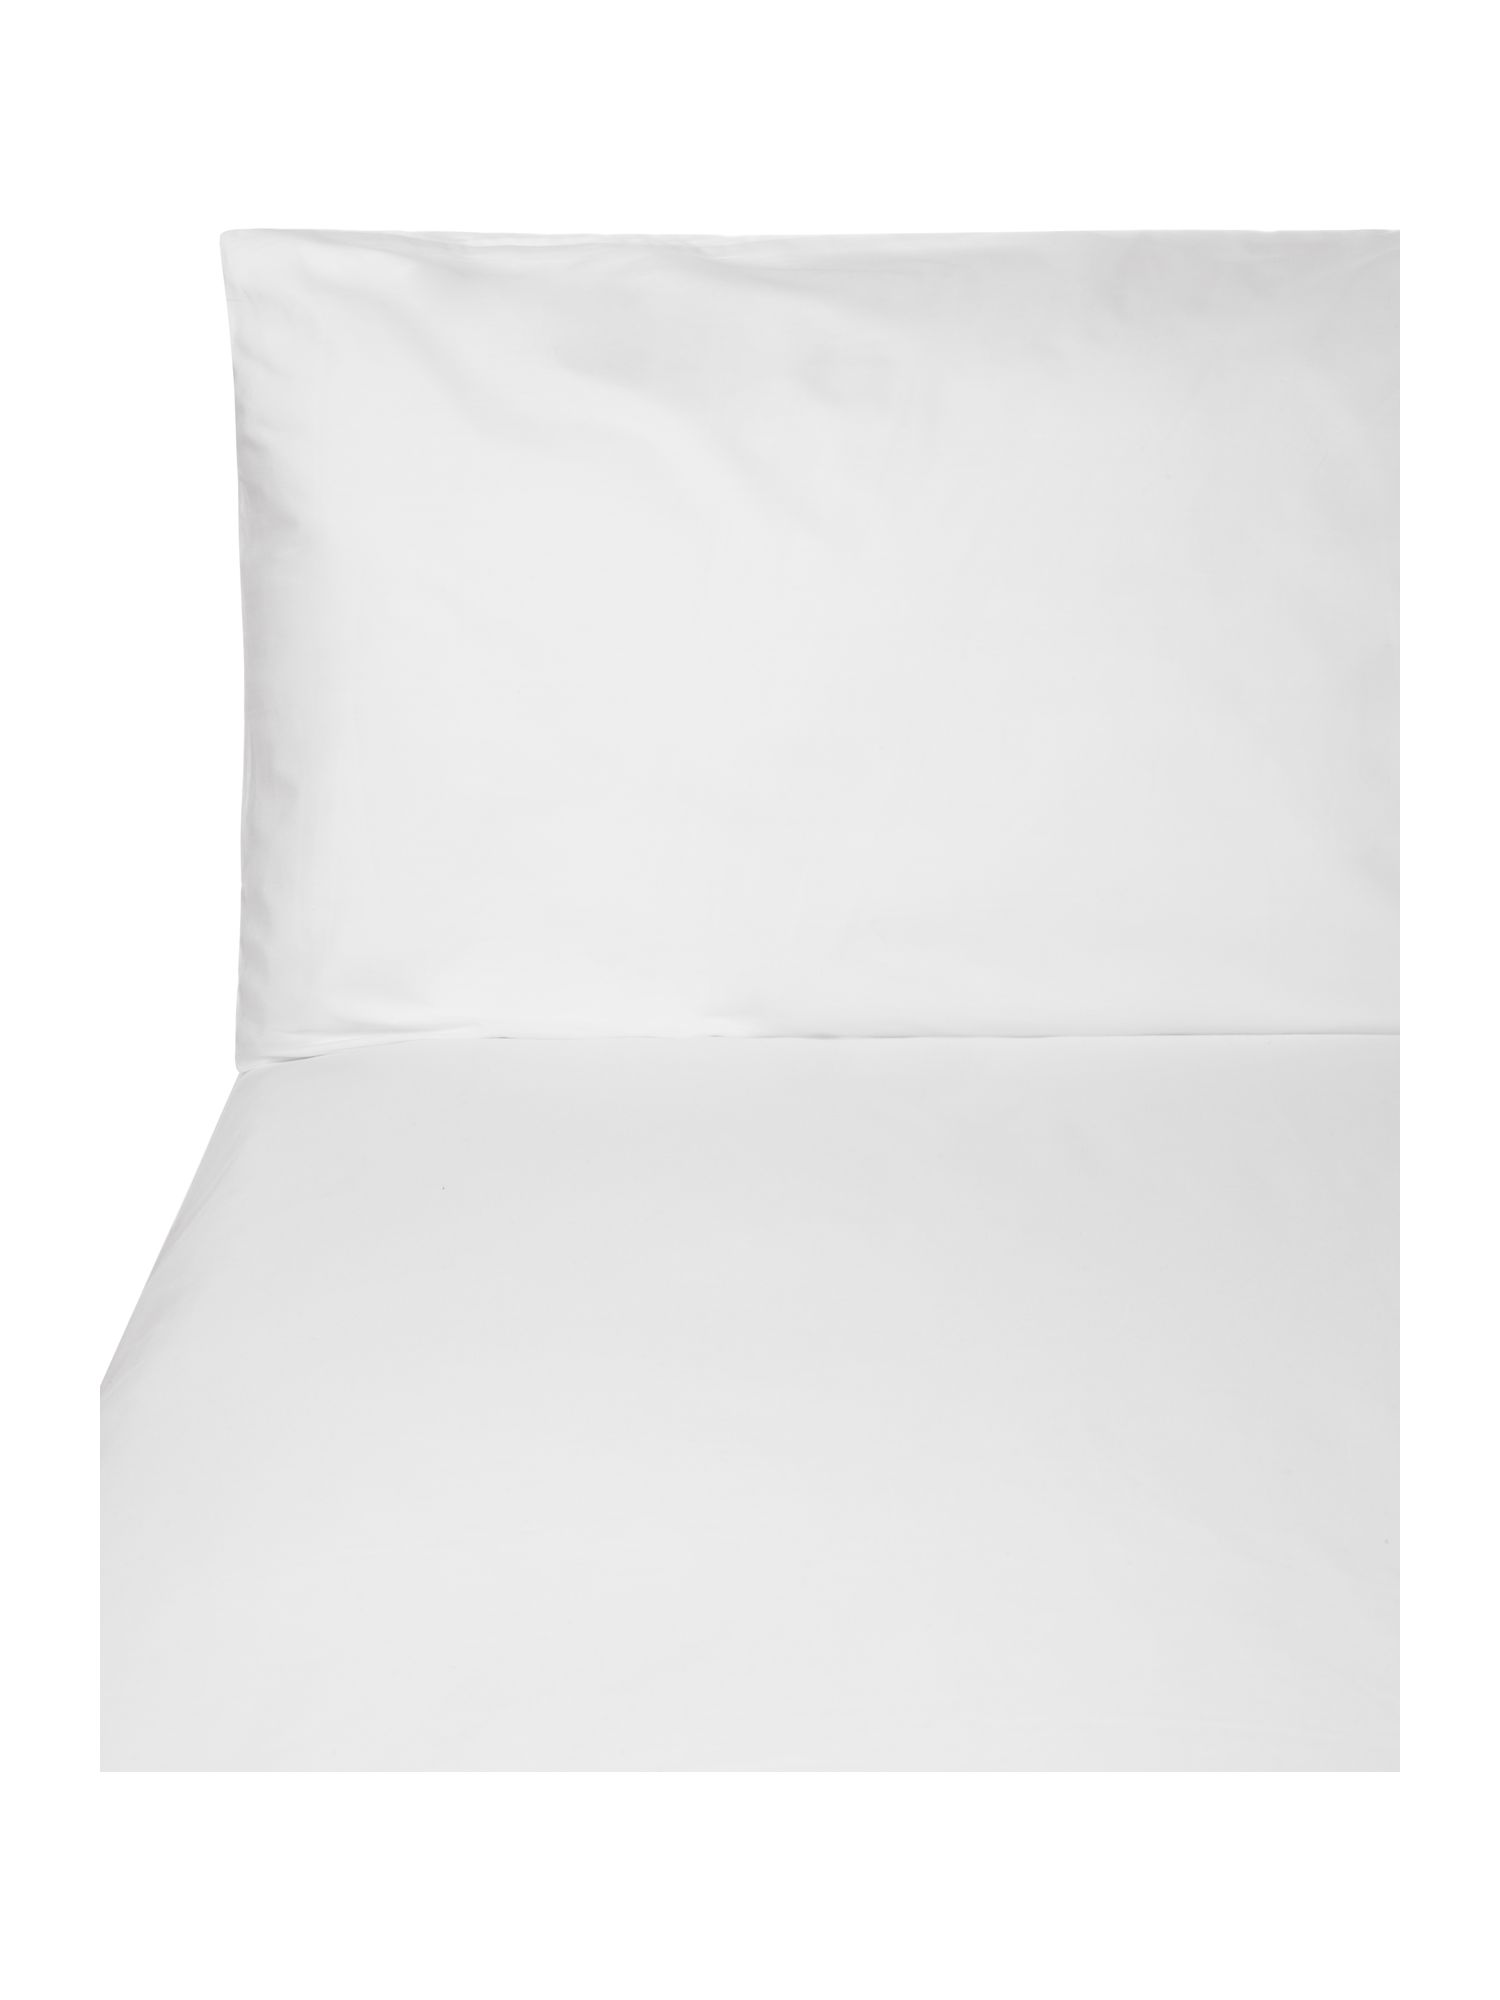 100% cotton percale bed linen in white